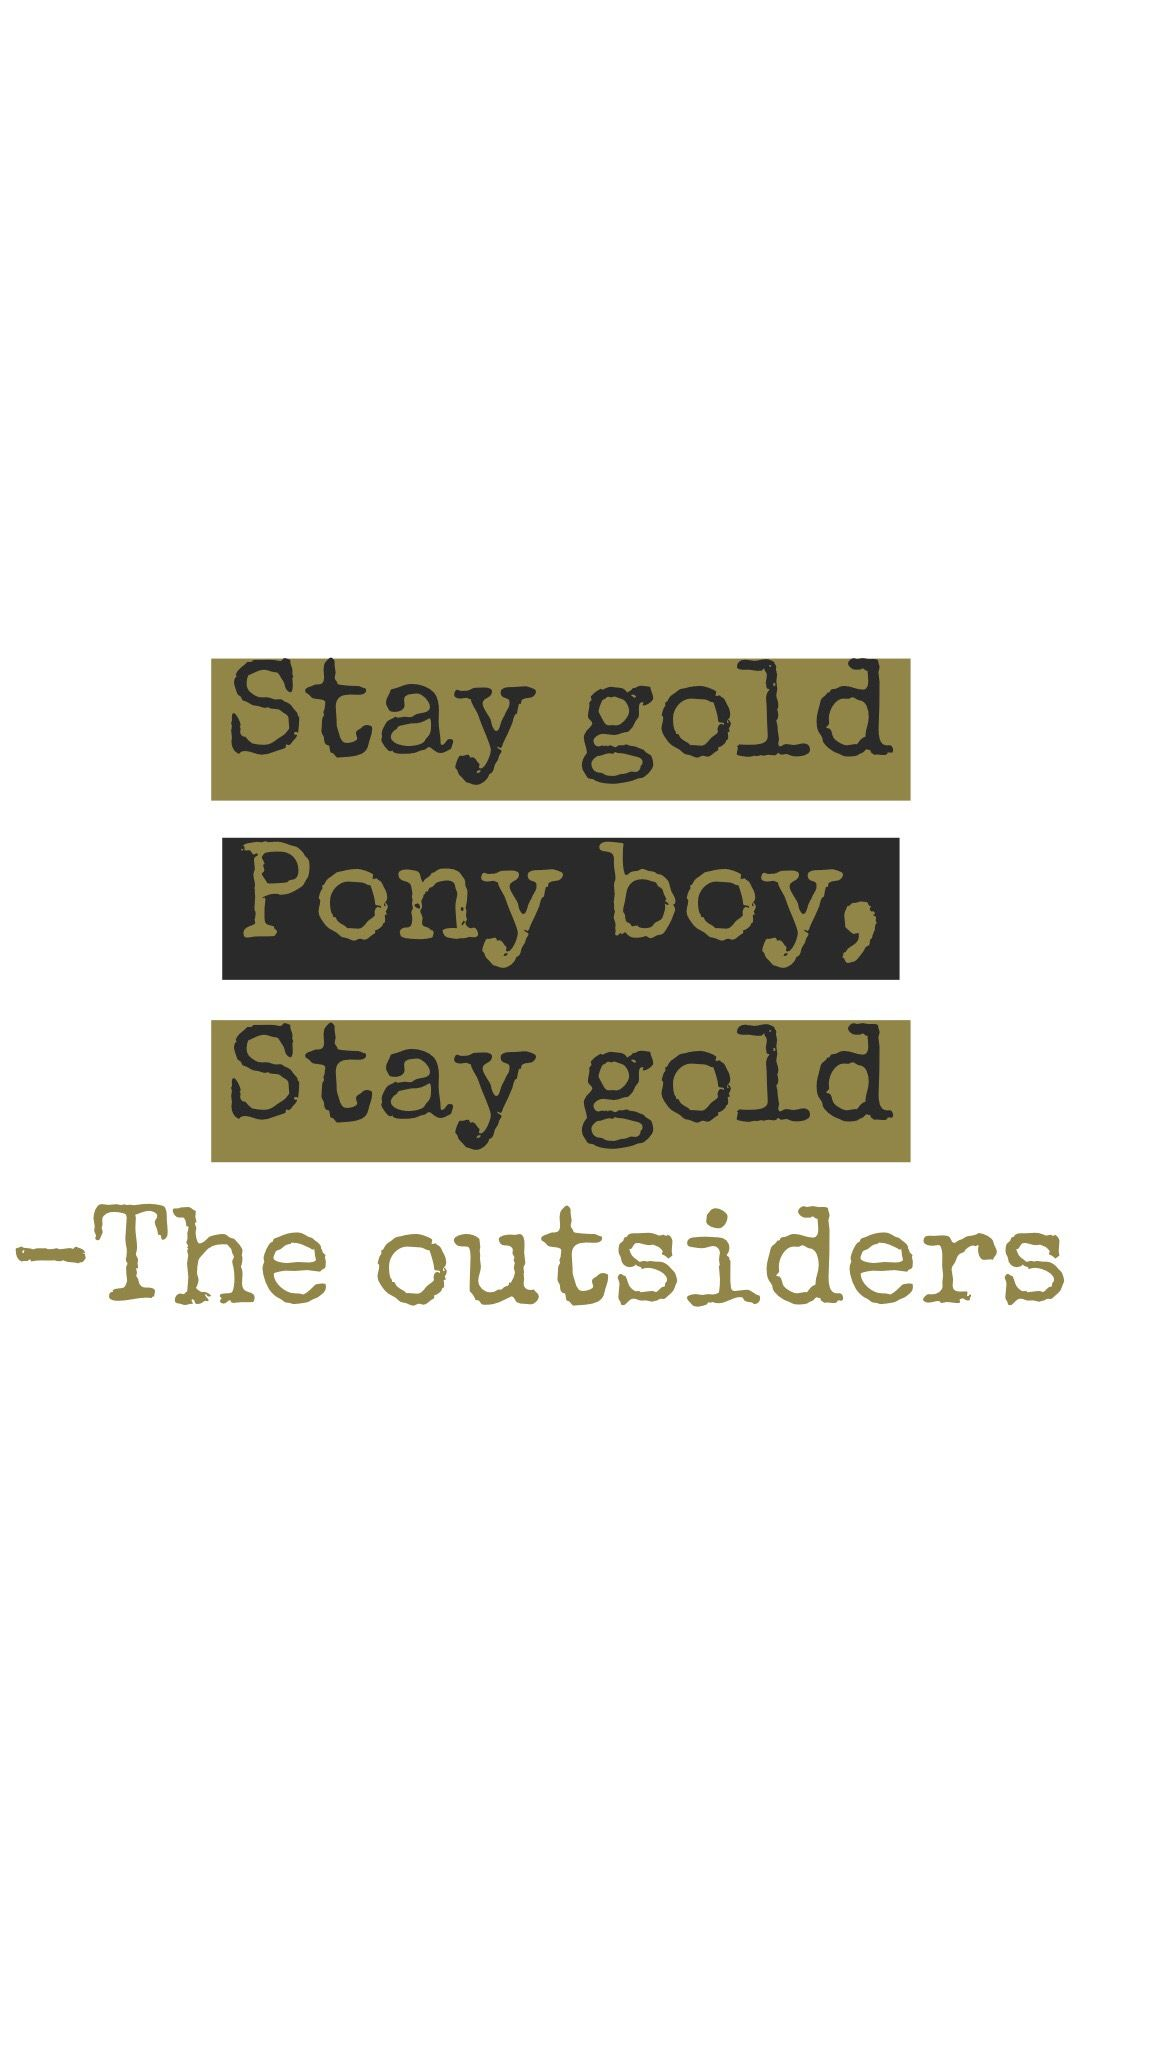 Stay gold ponyboy The outsiders Stay gold Good books 1154x2048